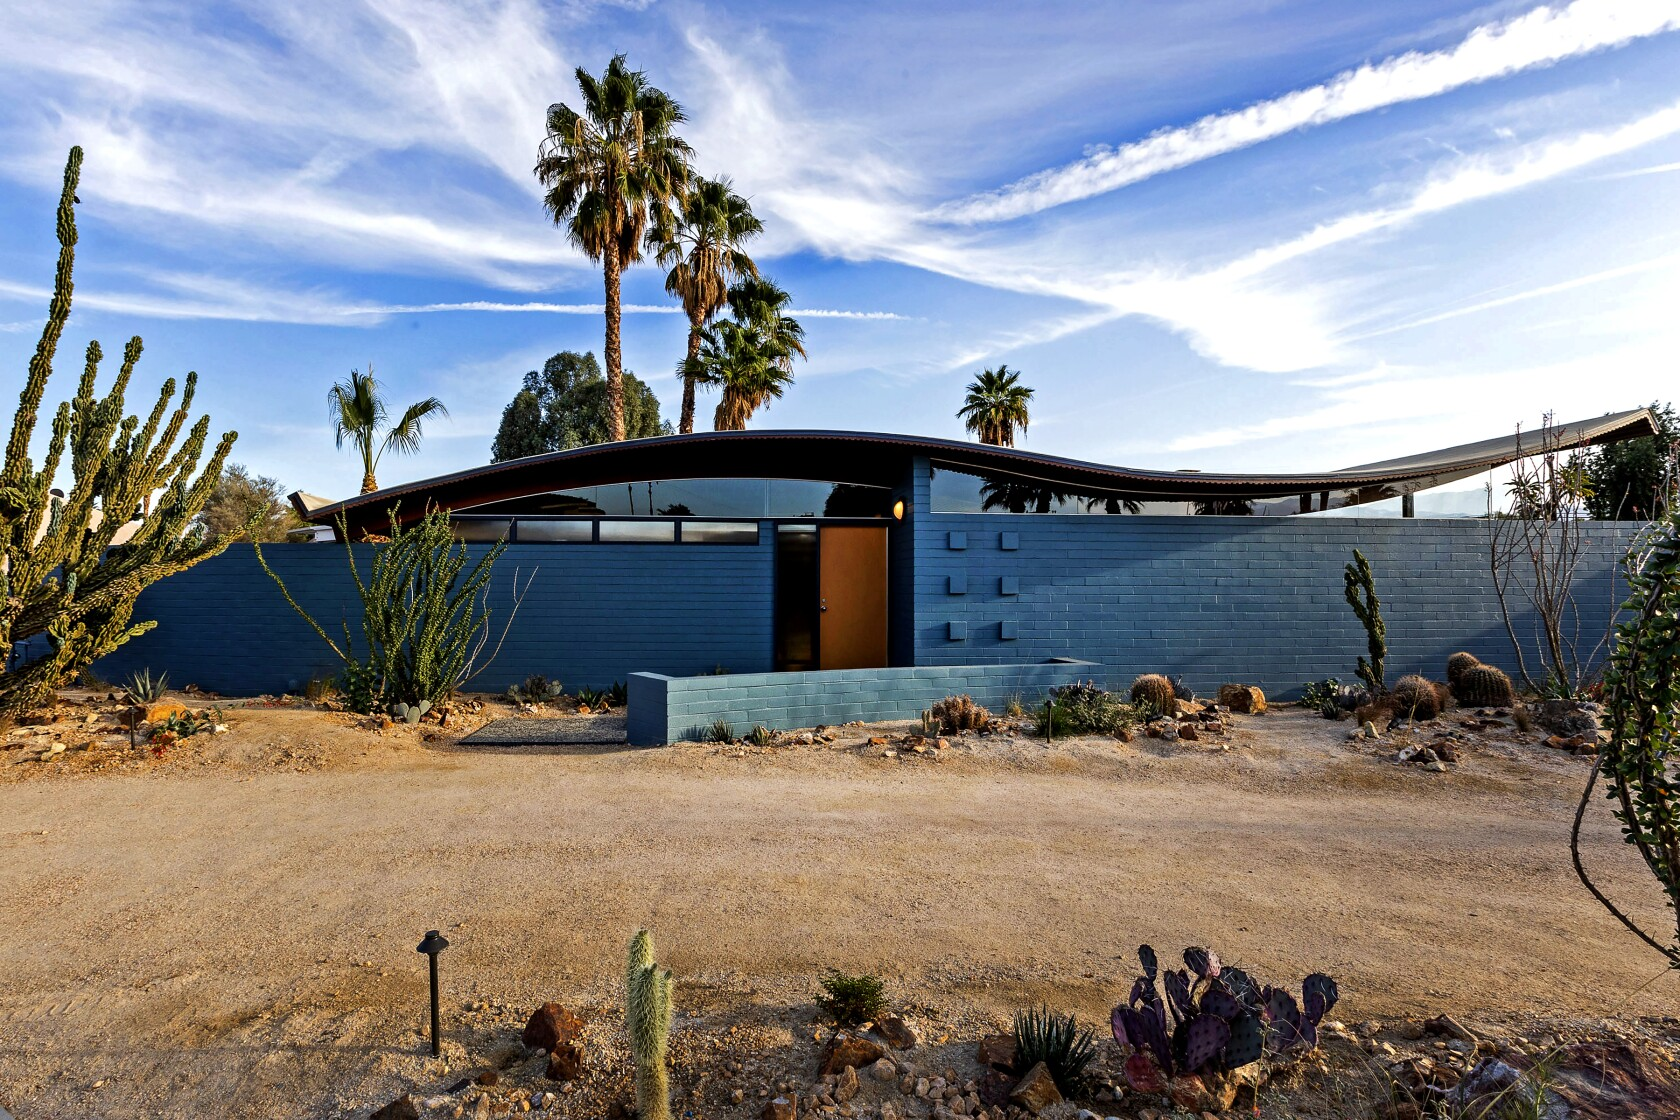 Miles C. Bates' Wave House finds new life in Palm Desert